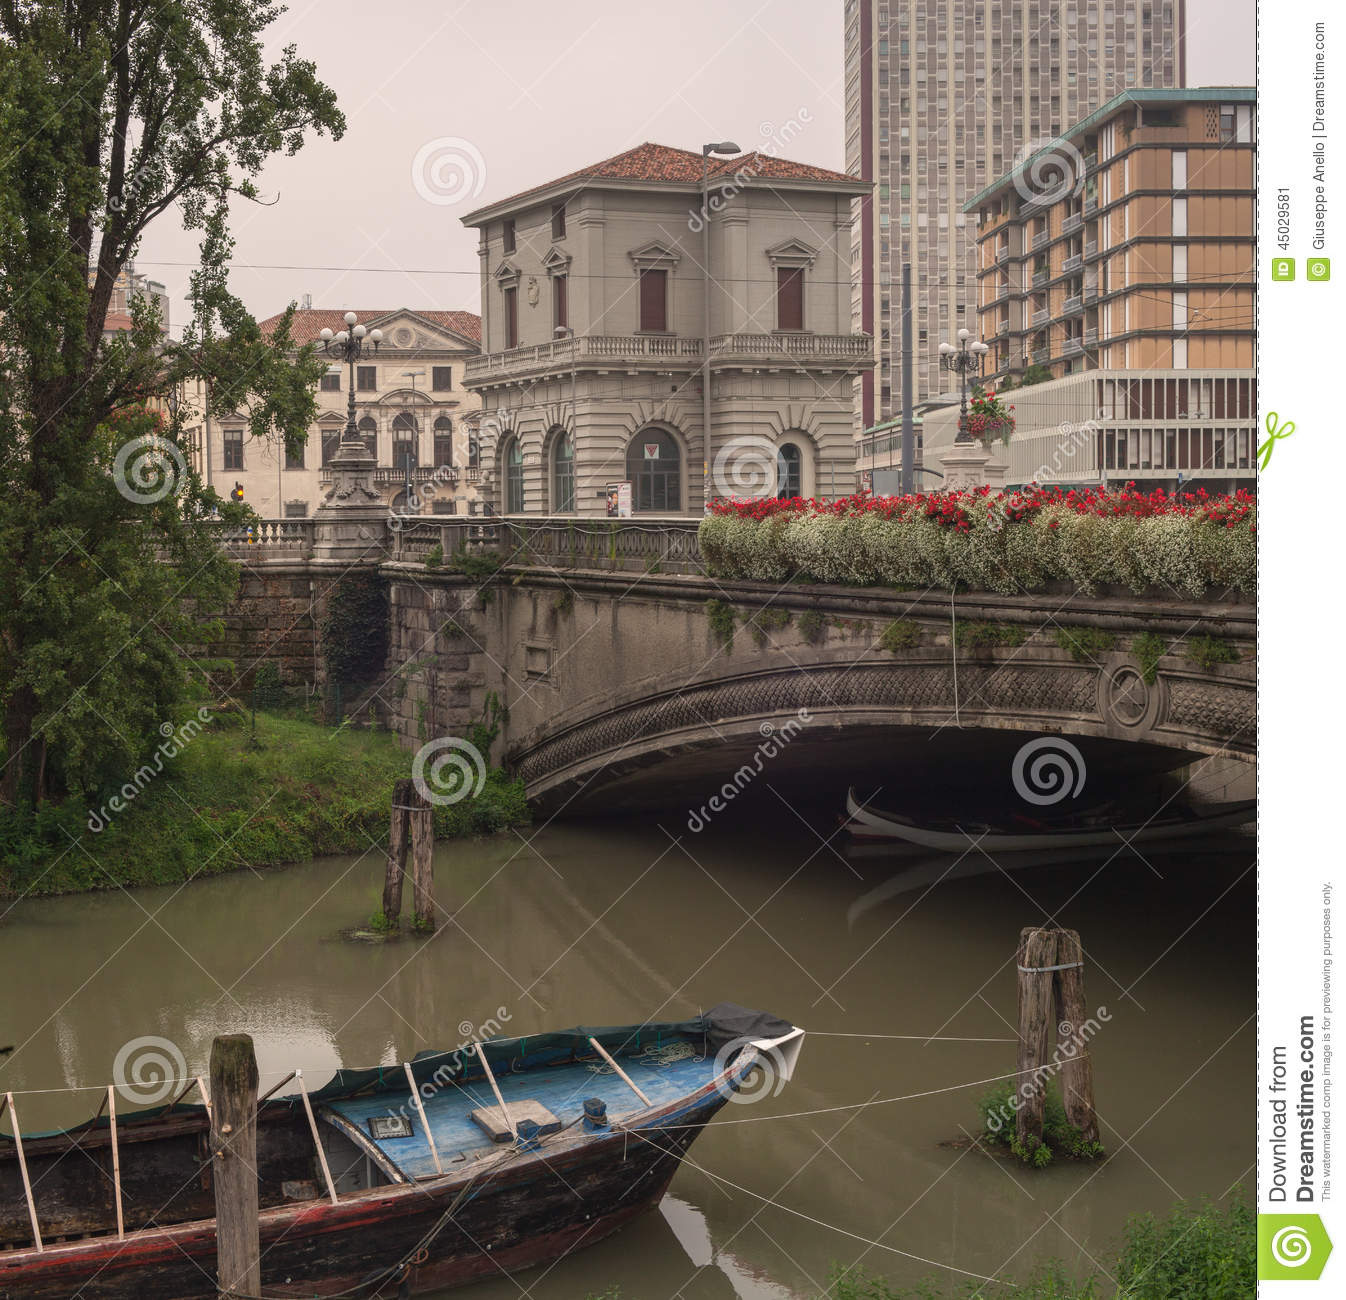 bf268bcbea Boat Under The Bridge, Padova Stock Image - Image of travel ...